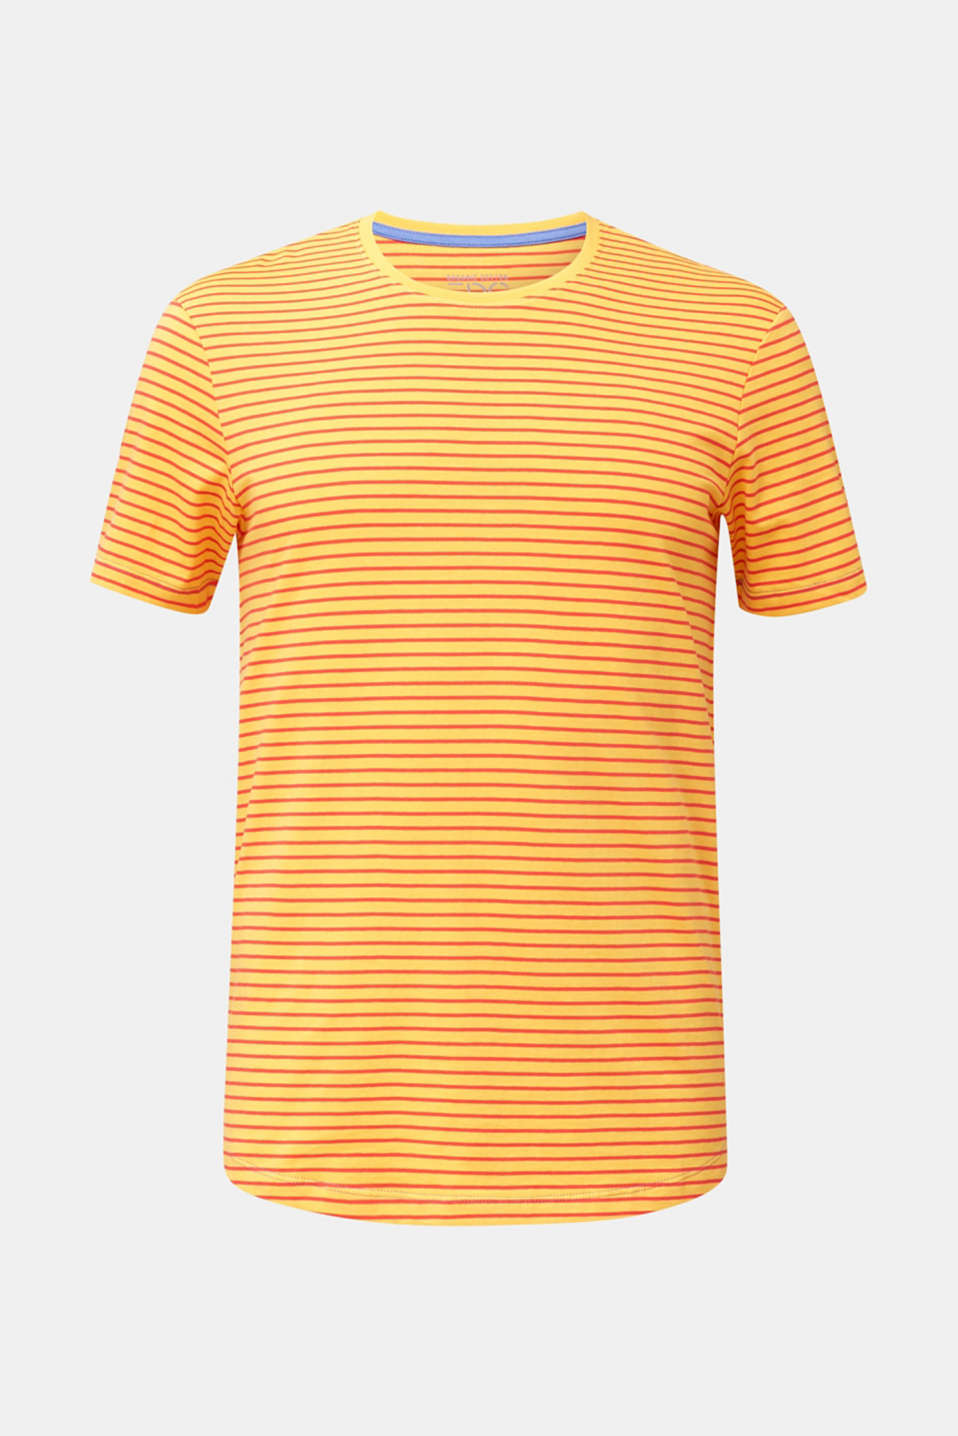 Jersey T-shirt with stripes, 100% cotton, BRASS YELLOW 3, detail image number 8